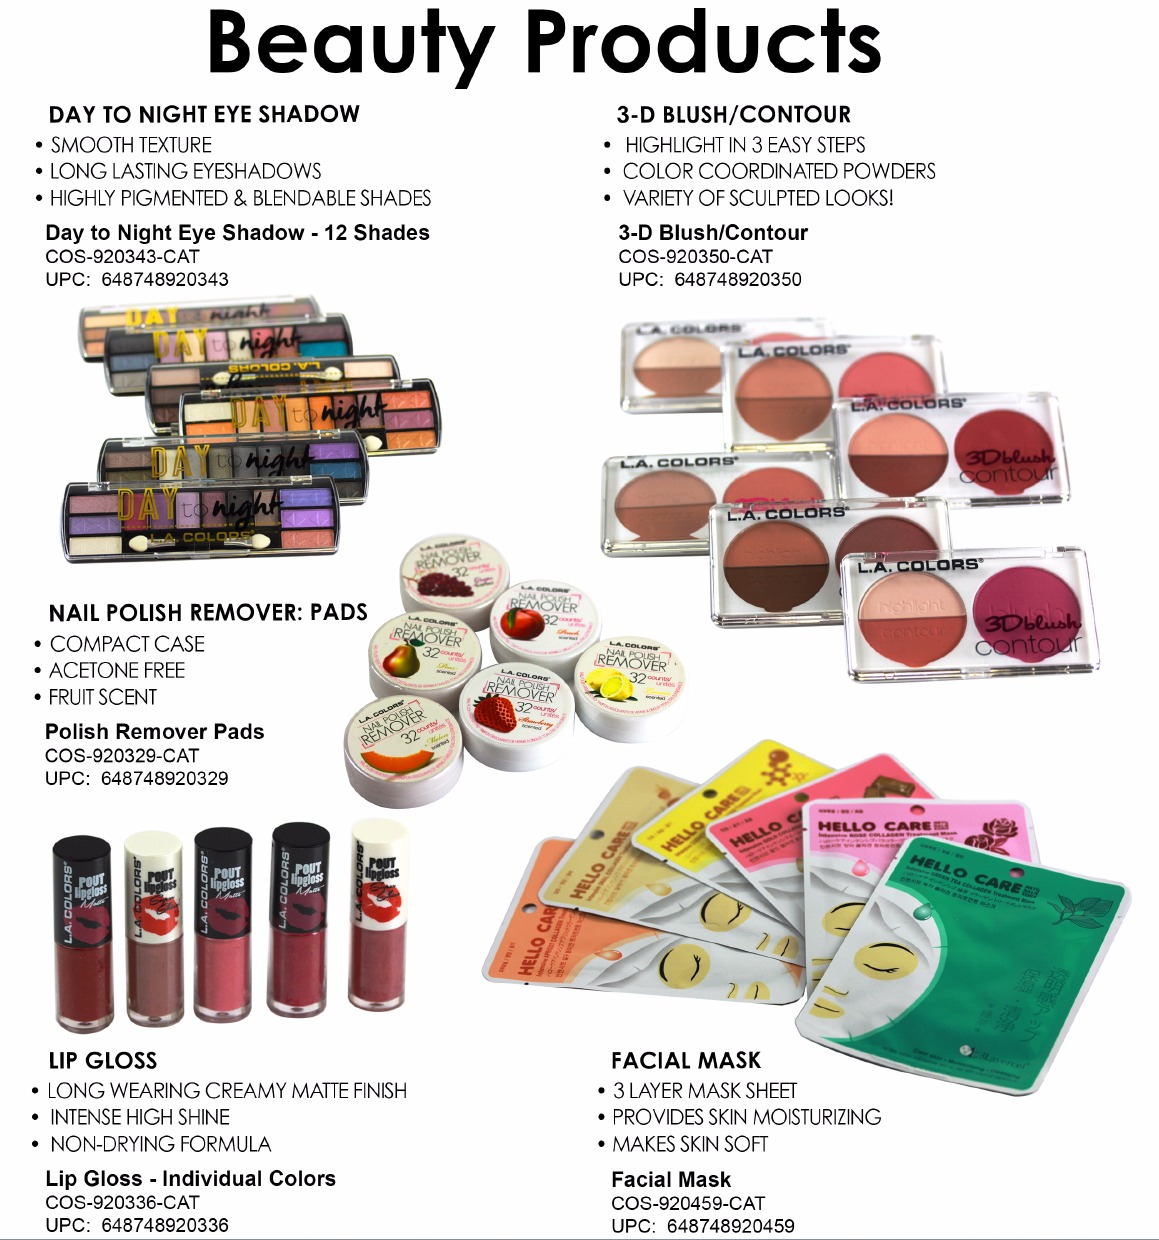 Beauty Products_edited